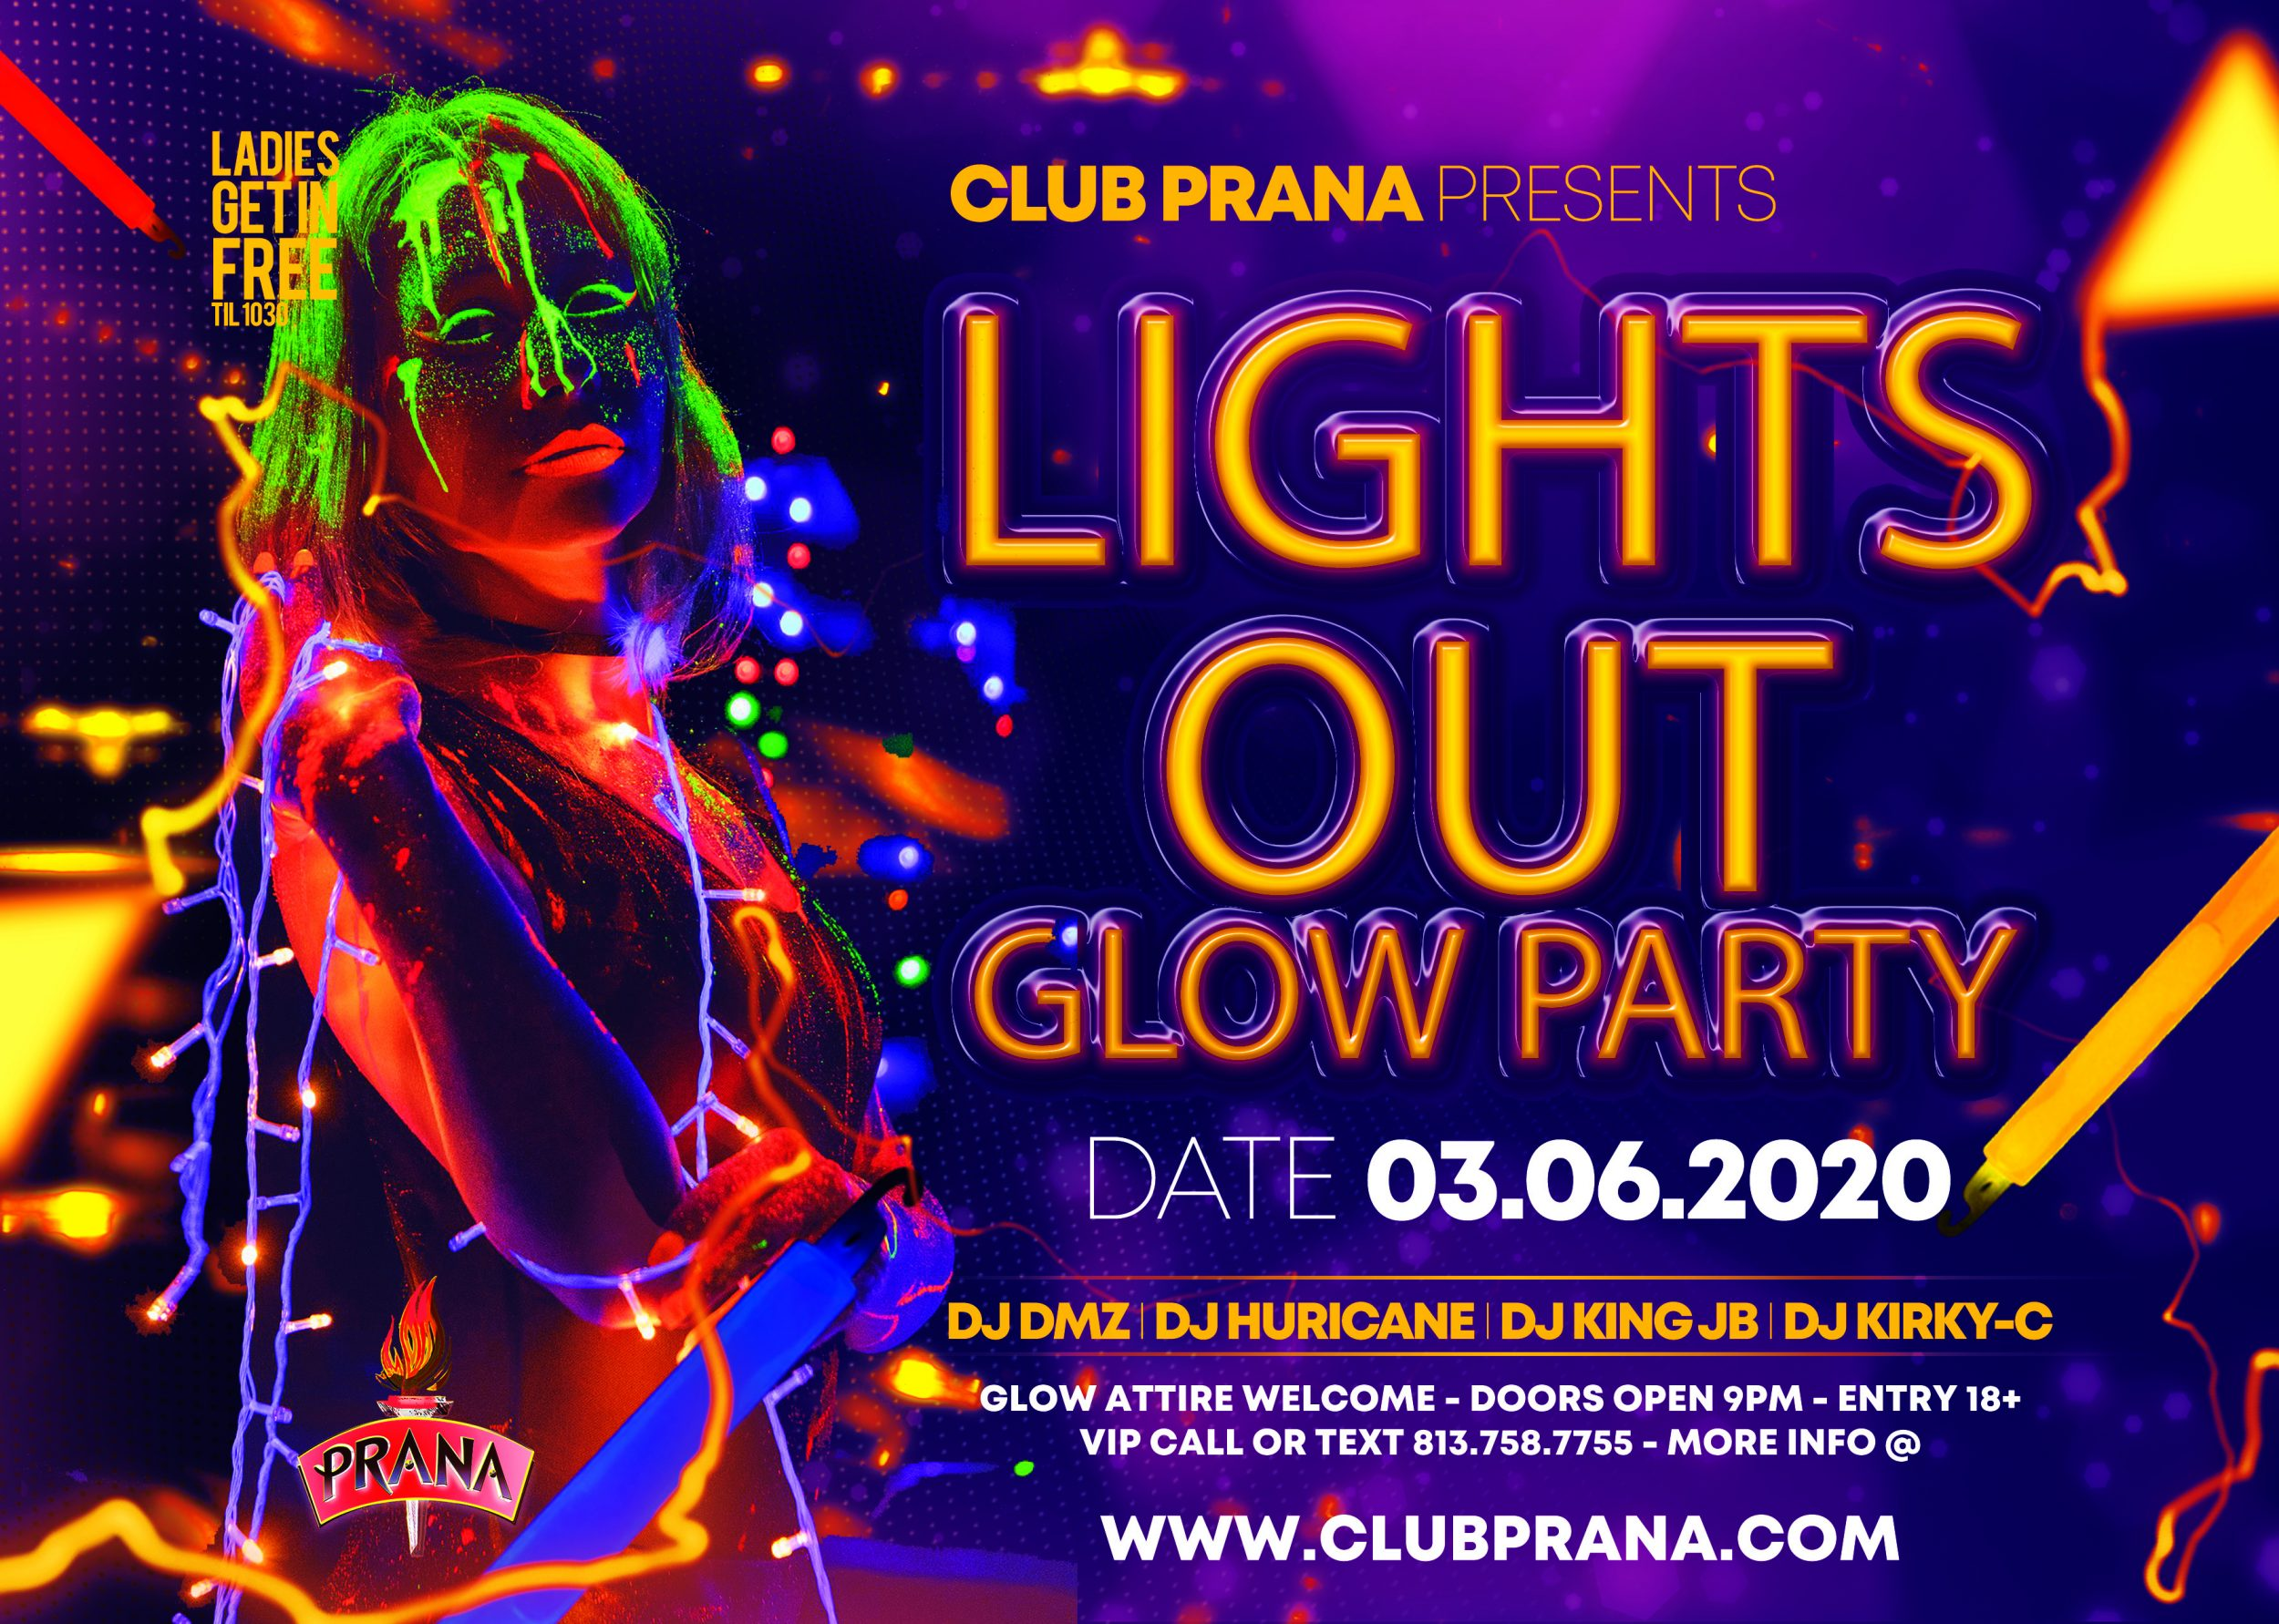 Lights Out Glow Party